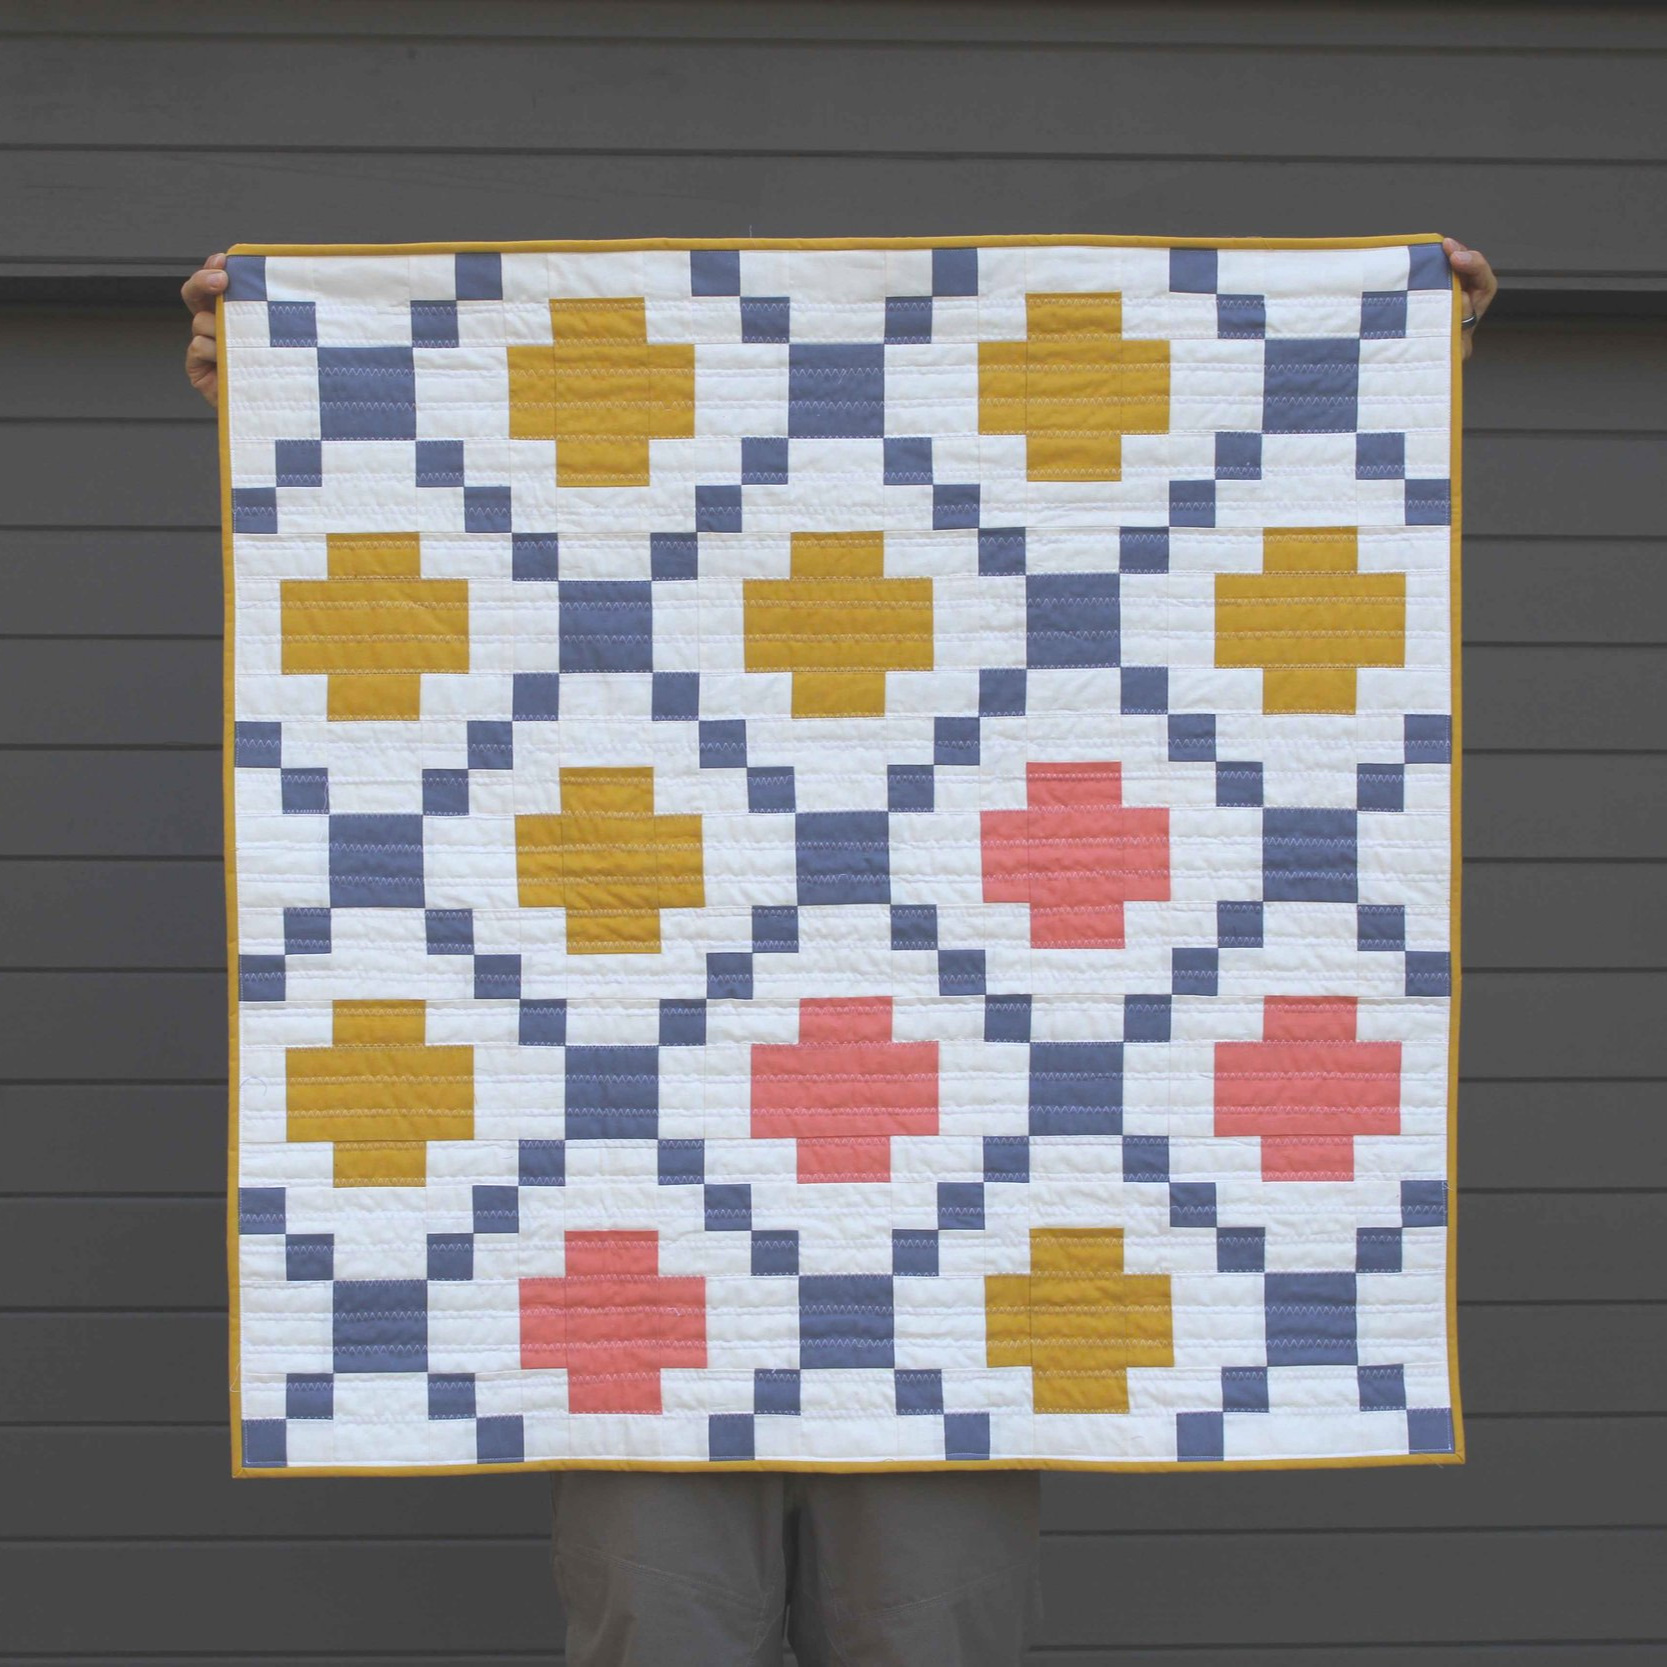 HIGHLAND SCRAMBLE 37 x 37 | 2018, Quilt 023 Modern Crossing by Patchwork and Poodles